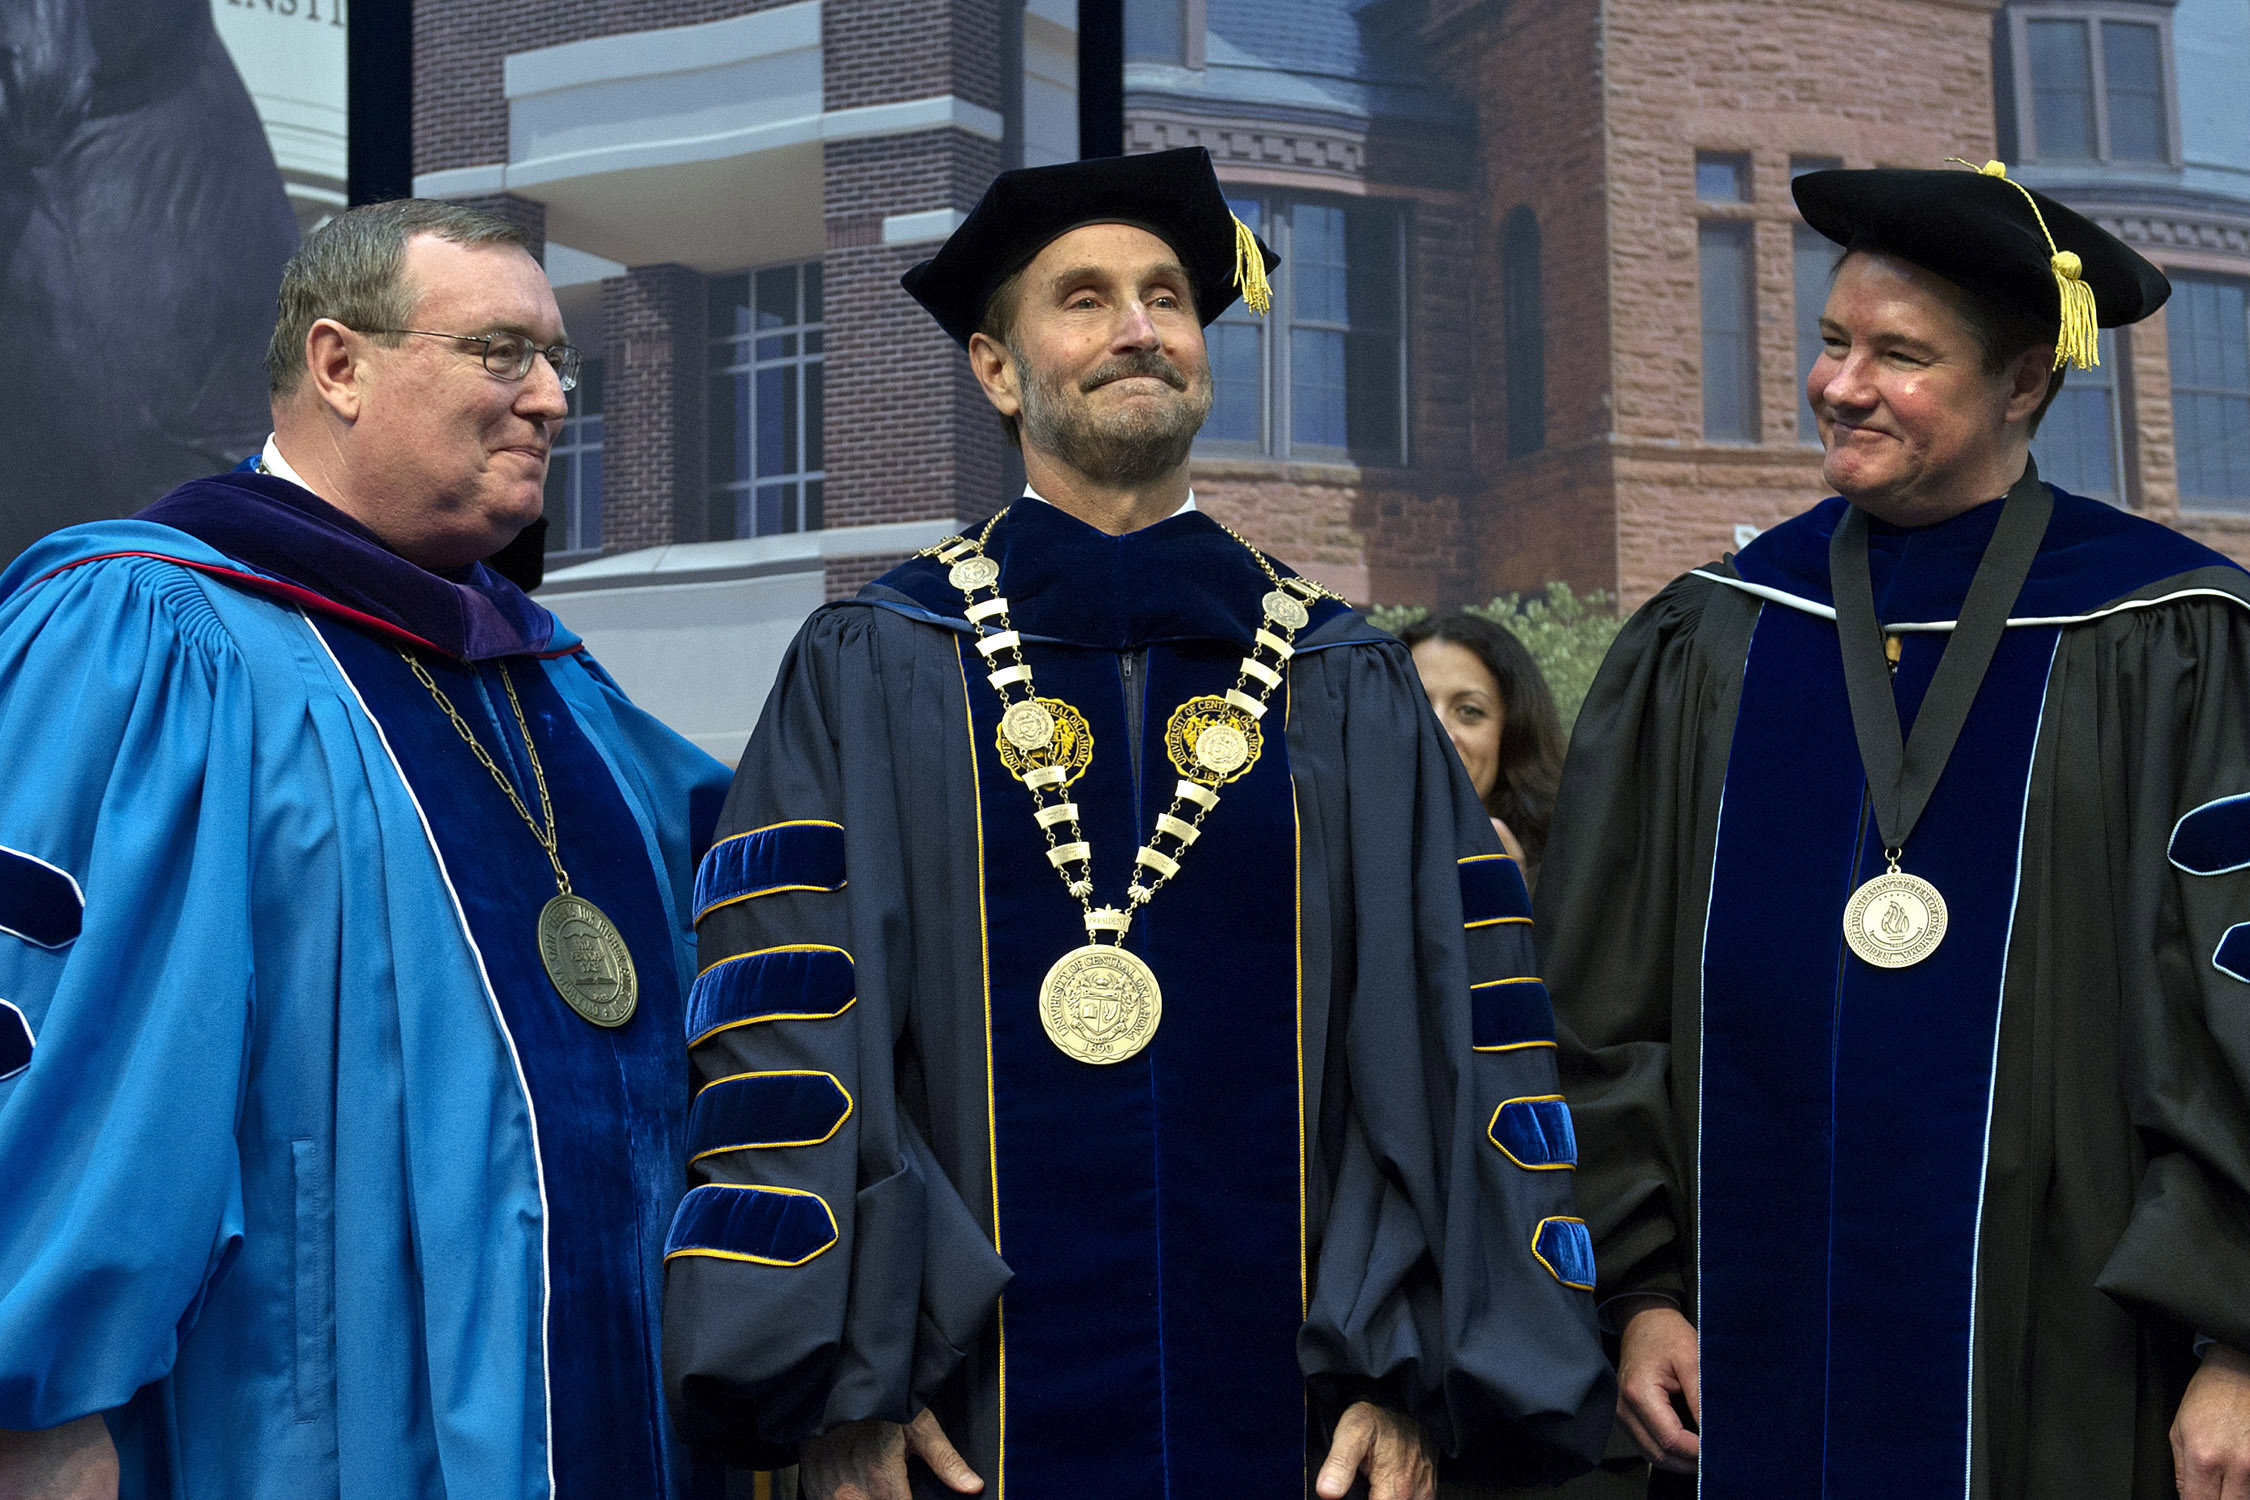 Oklahoma State Regents for Higher Education Chancellor Glen Johnson, J.D. (left), and Regional University System of Oklahoma Secretary Richard C. Ogden, J.D. (right) smile after placing the University of Central Oklahoma's medallion, a symbol of the presidential office and its authority, upon Don Betz, Ph.D. (center), during his inauguration Friday as the university's 20th president.